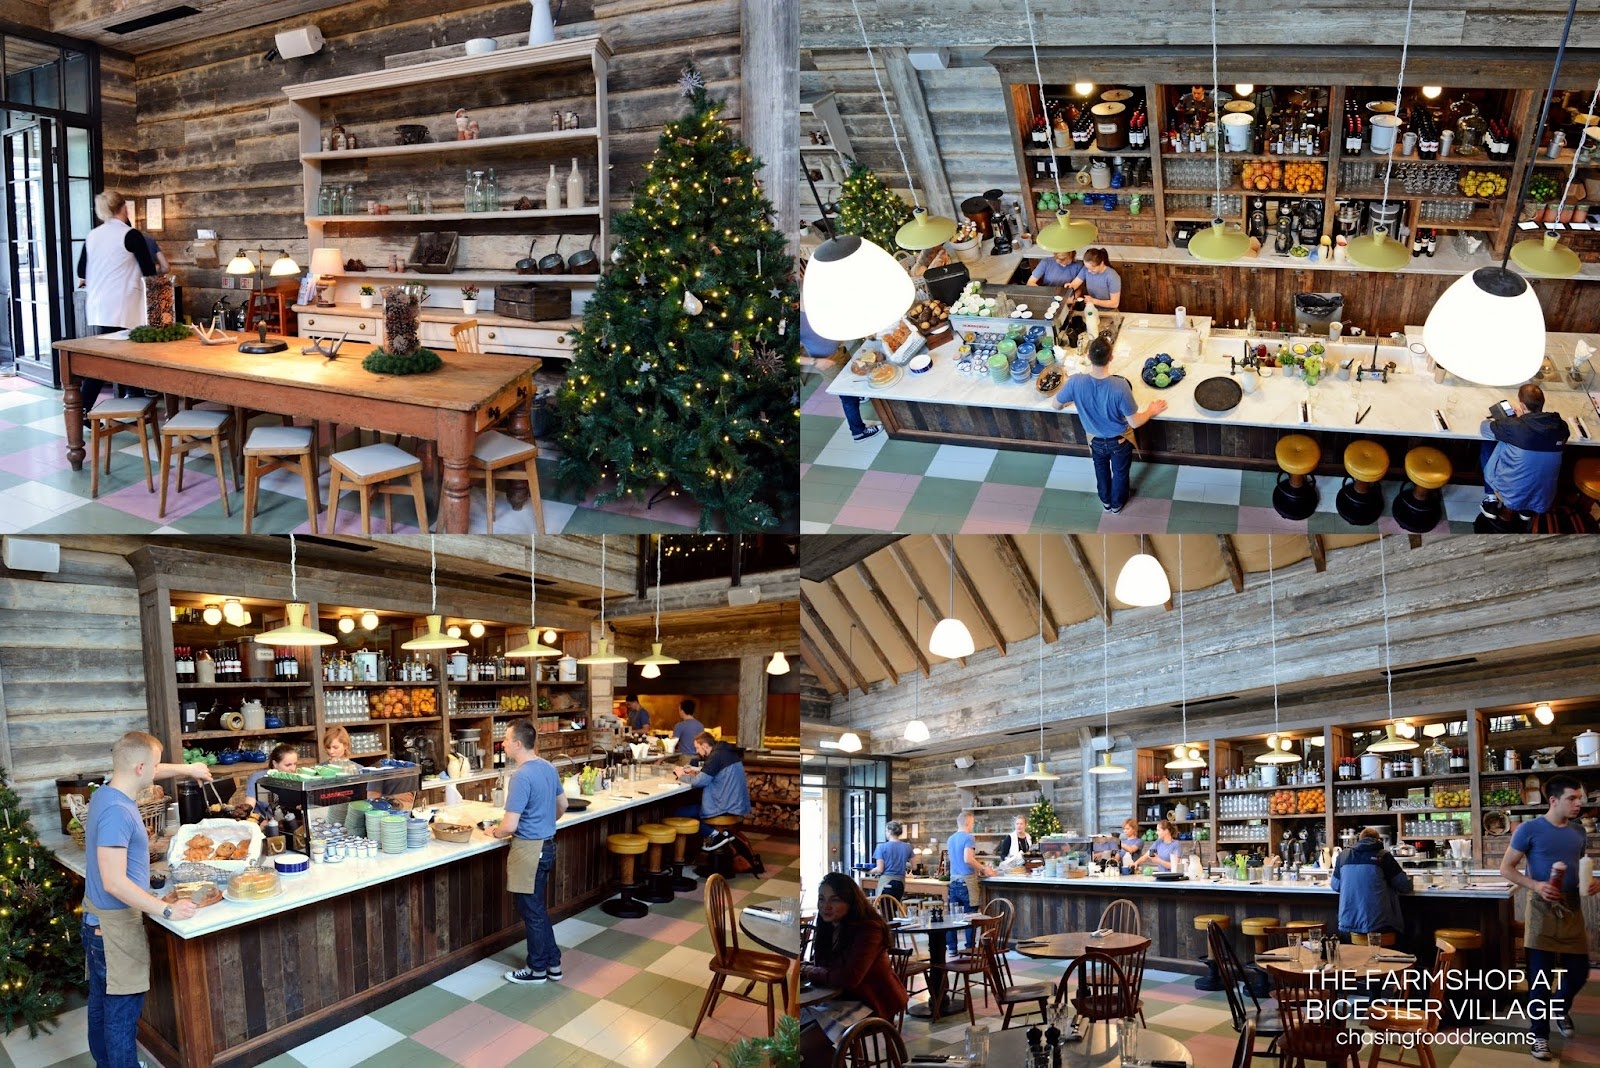 CHASING FOOD DREAMS: Fly Me To London: Travel to Bicester Village Outlet Shopping by Chiltern ...